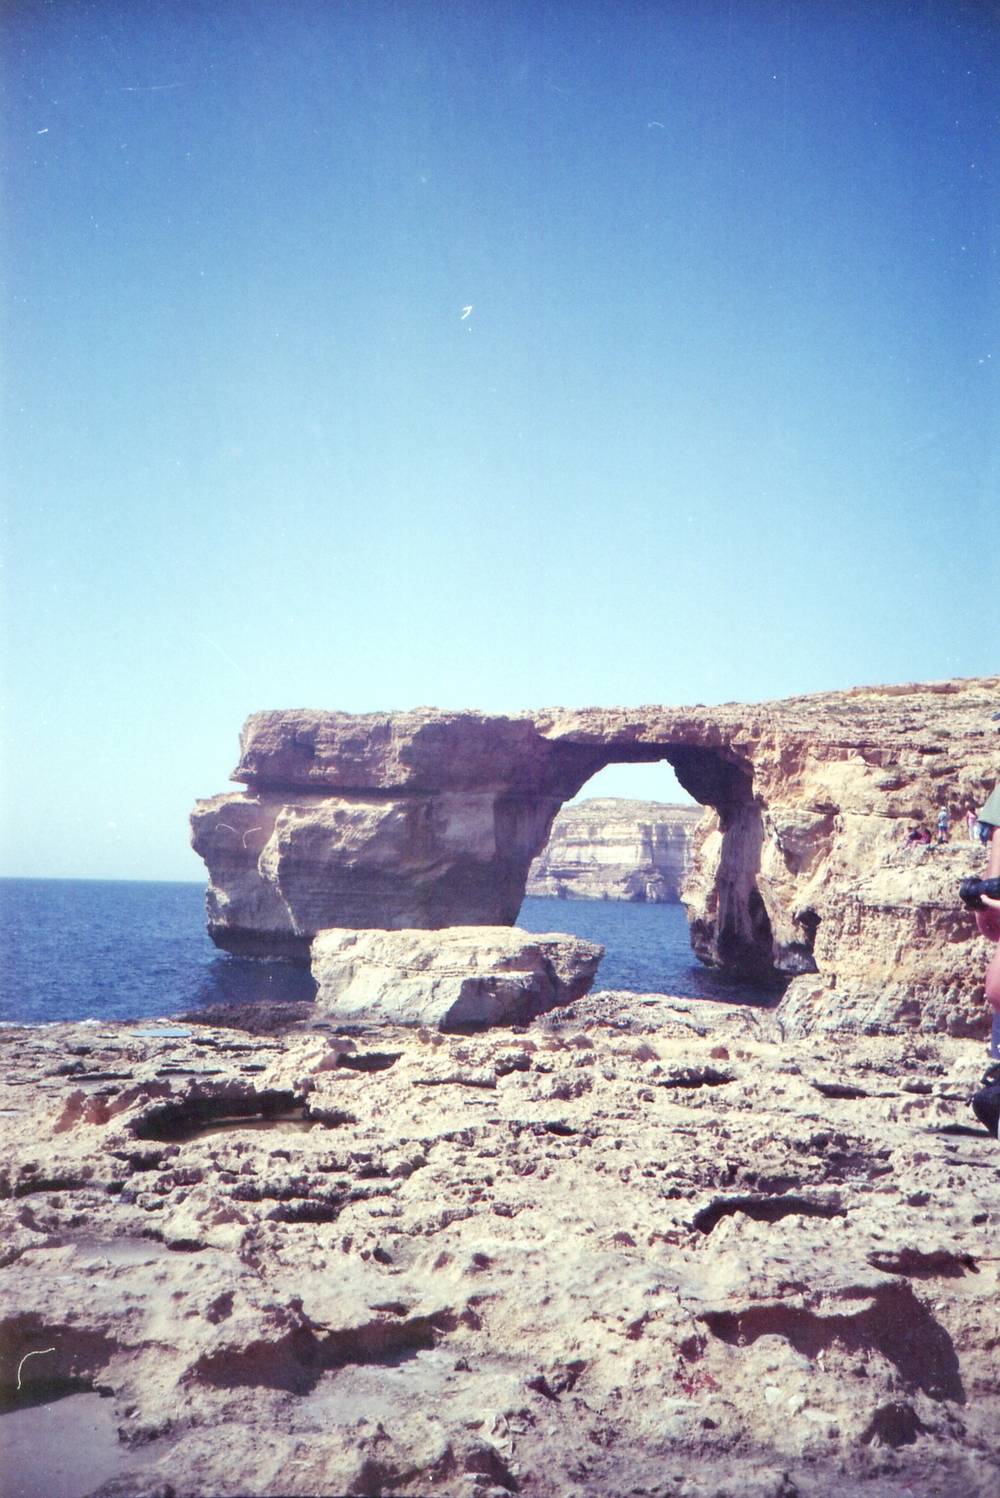 144/366 - Azures Window on the island Gozo... it was so pretty in person and we even went on a little boat around the other side which was so fun! What a great day.